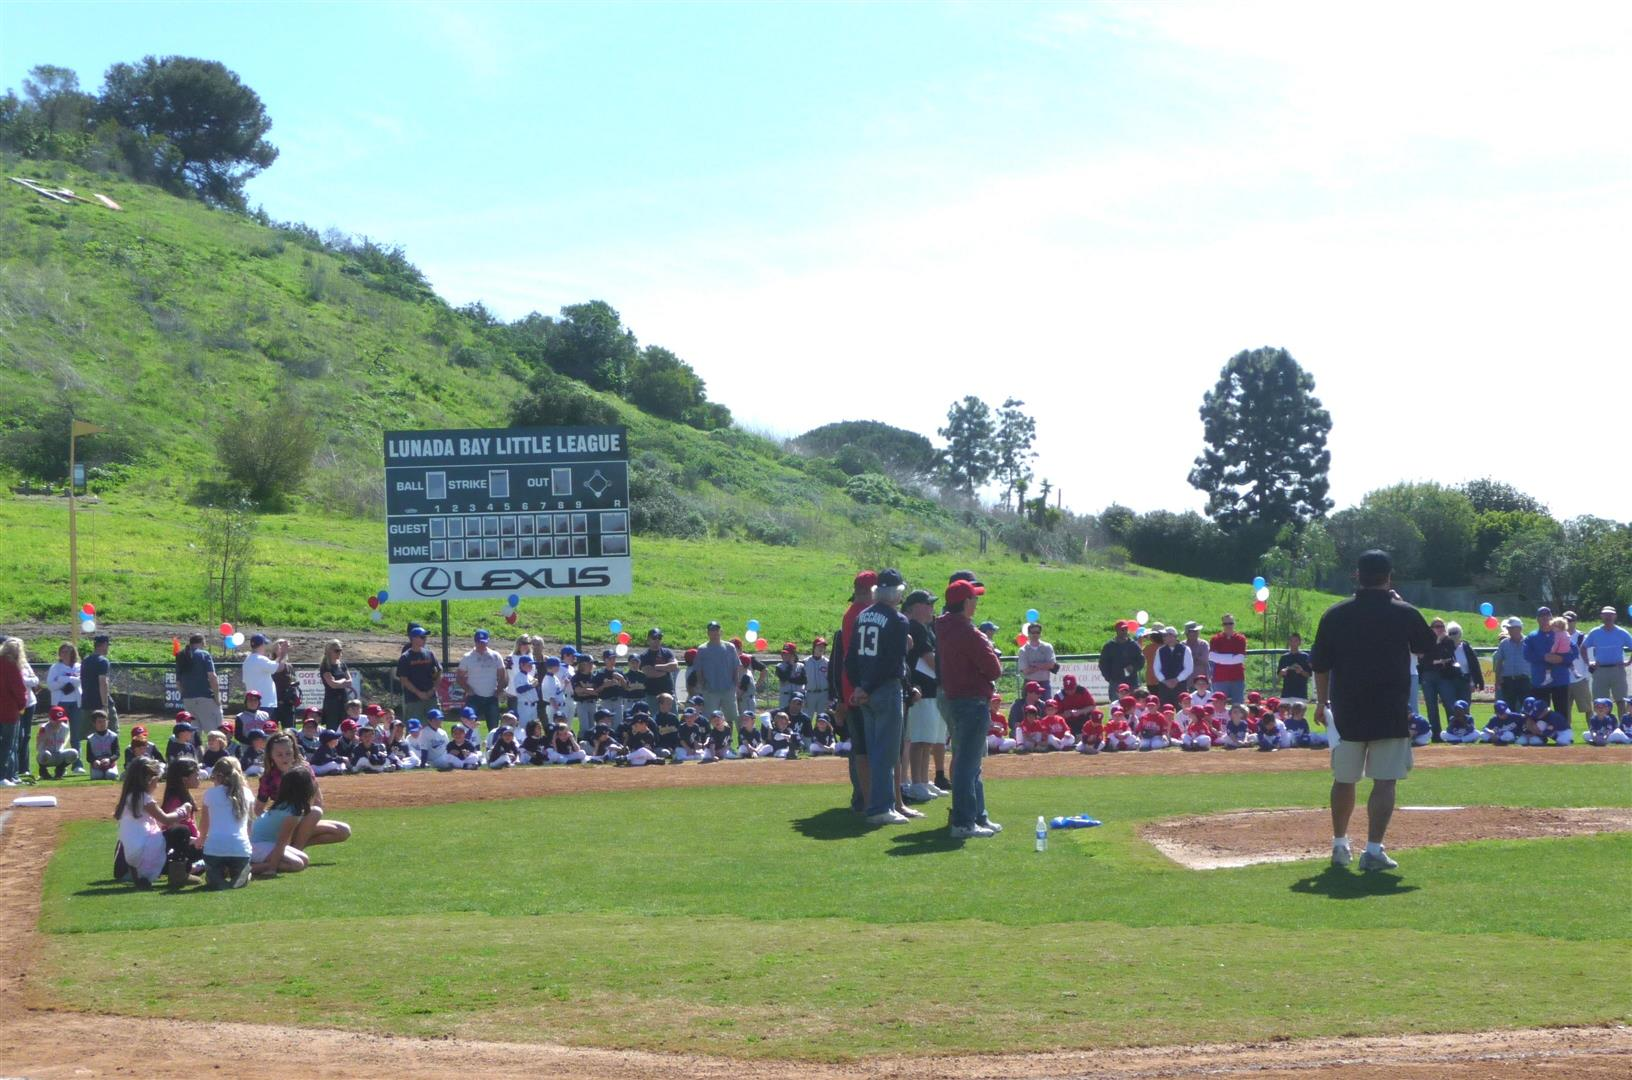 Lunada Bay Little League